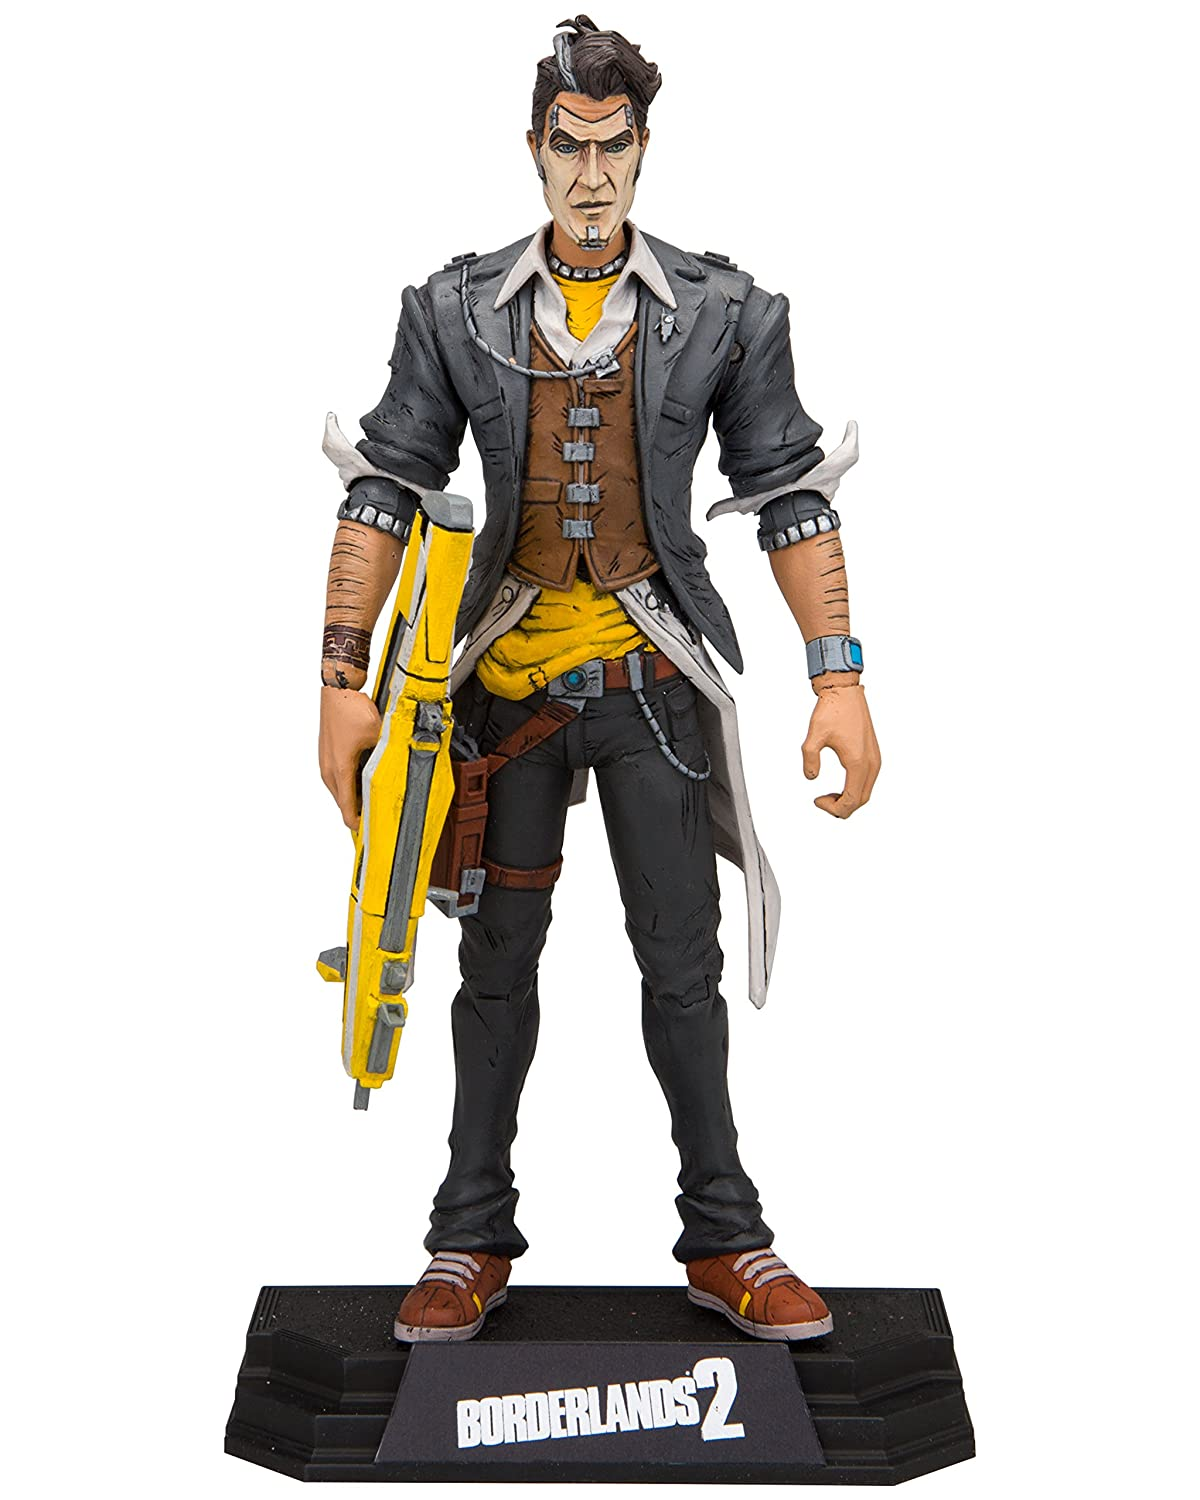 Boarderlands 14683 Borderlands Handsome Jack Action - Figura Decorativa, 17,78 cm